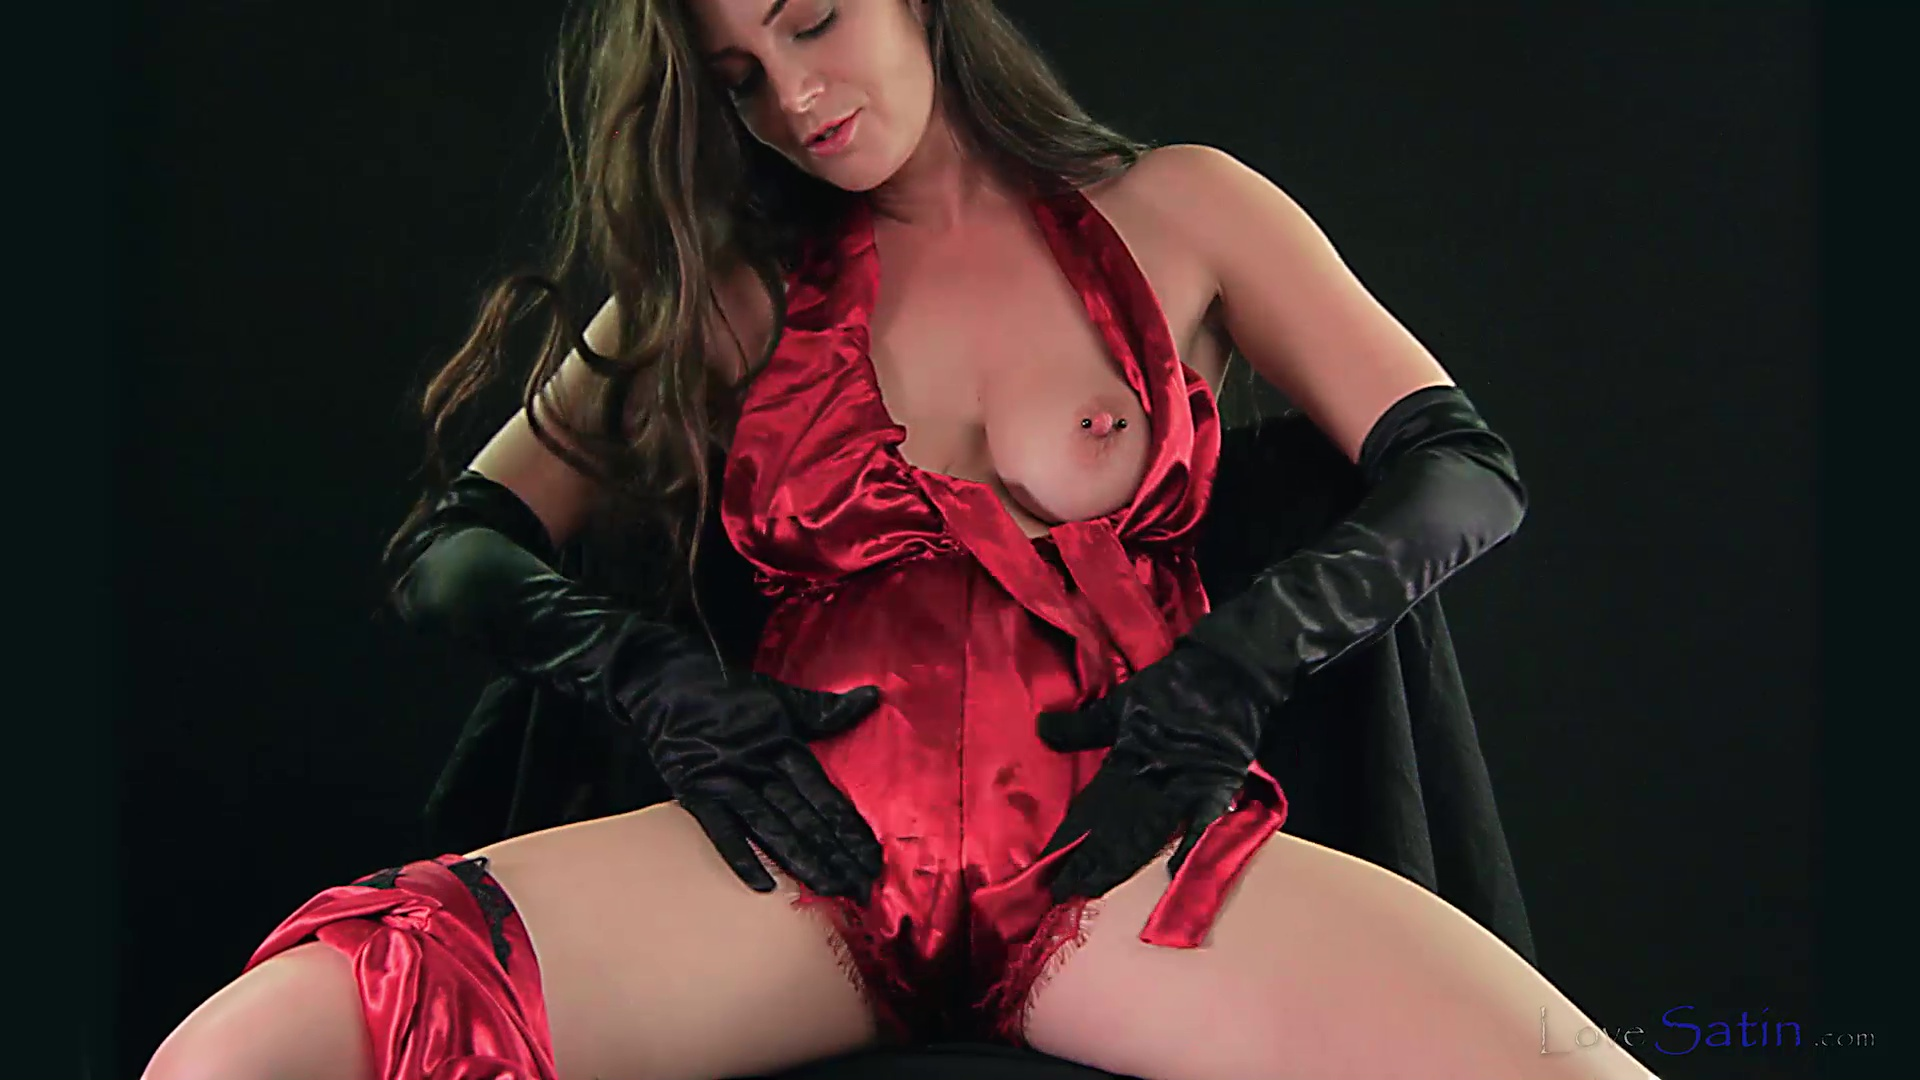 content/Cindy/Red Satin Lingerie Tease Cindy/1.jpg